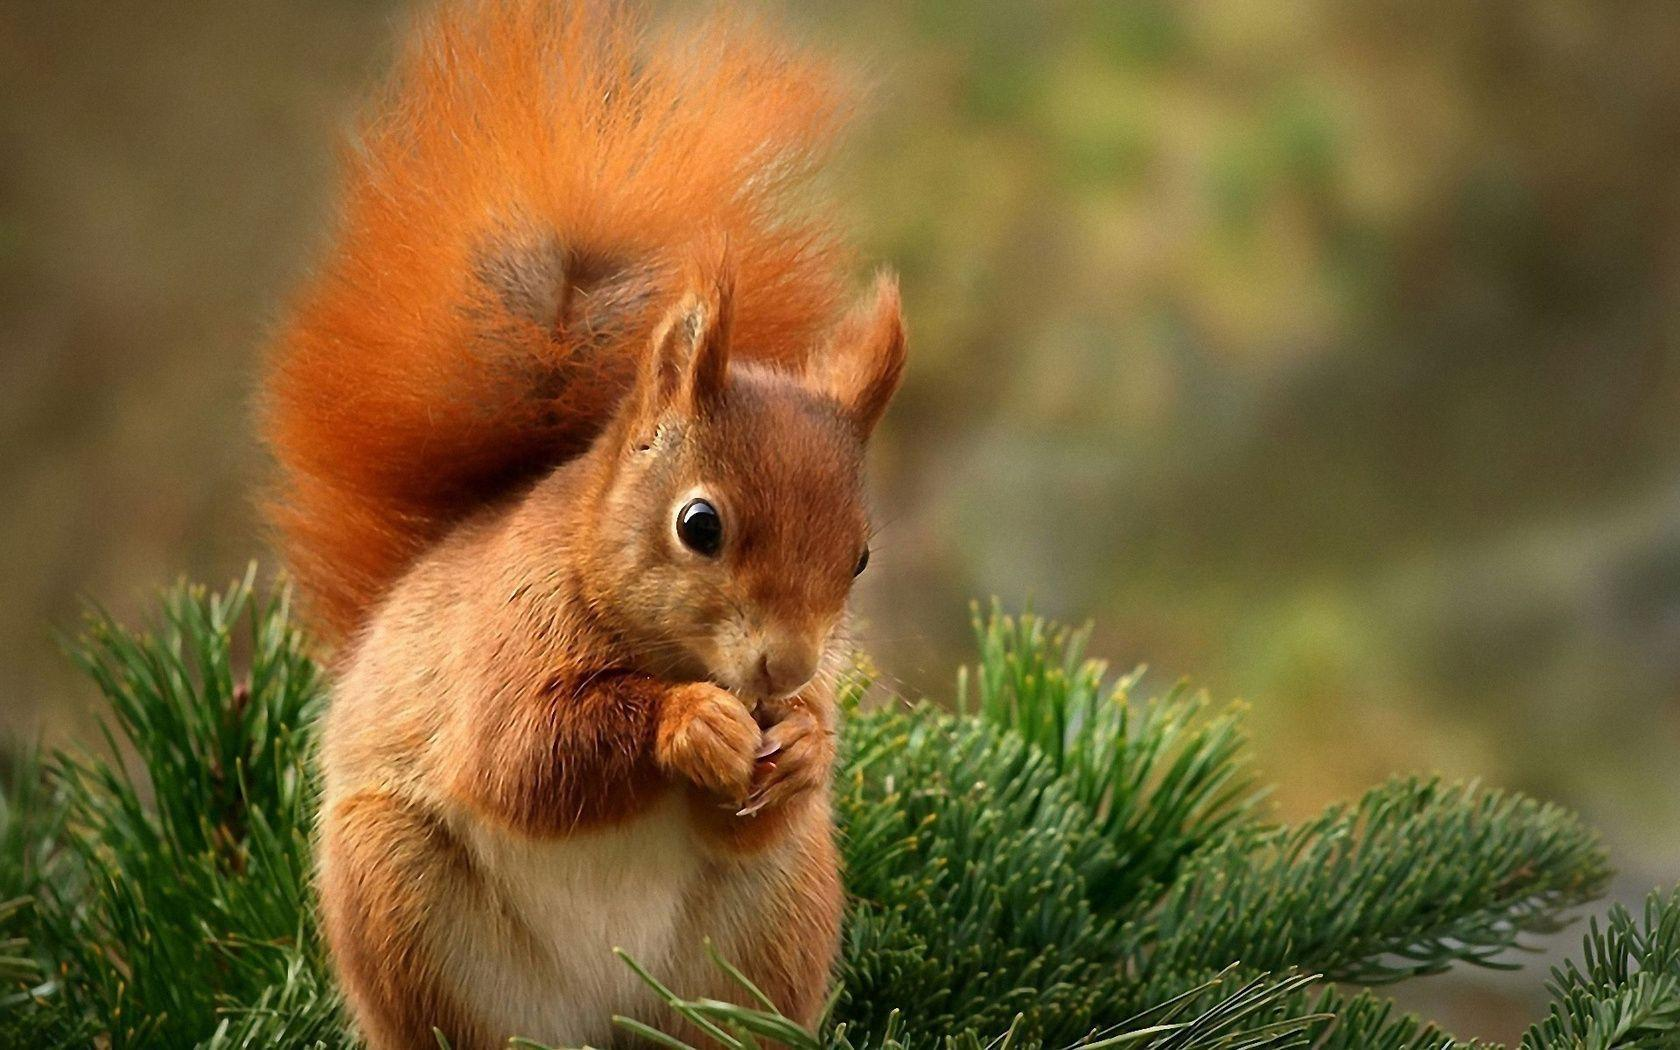 Squirrel HD Wallpaper | Squirrel Backgrounds Pictures | New Wallpapers